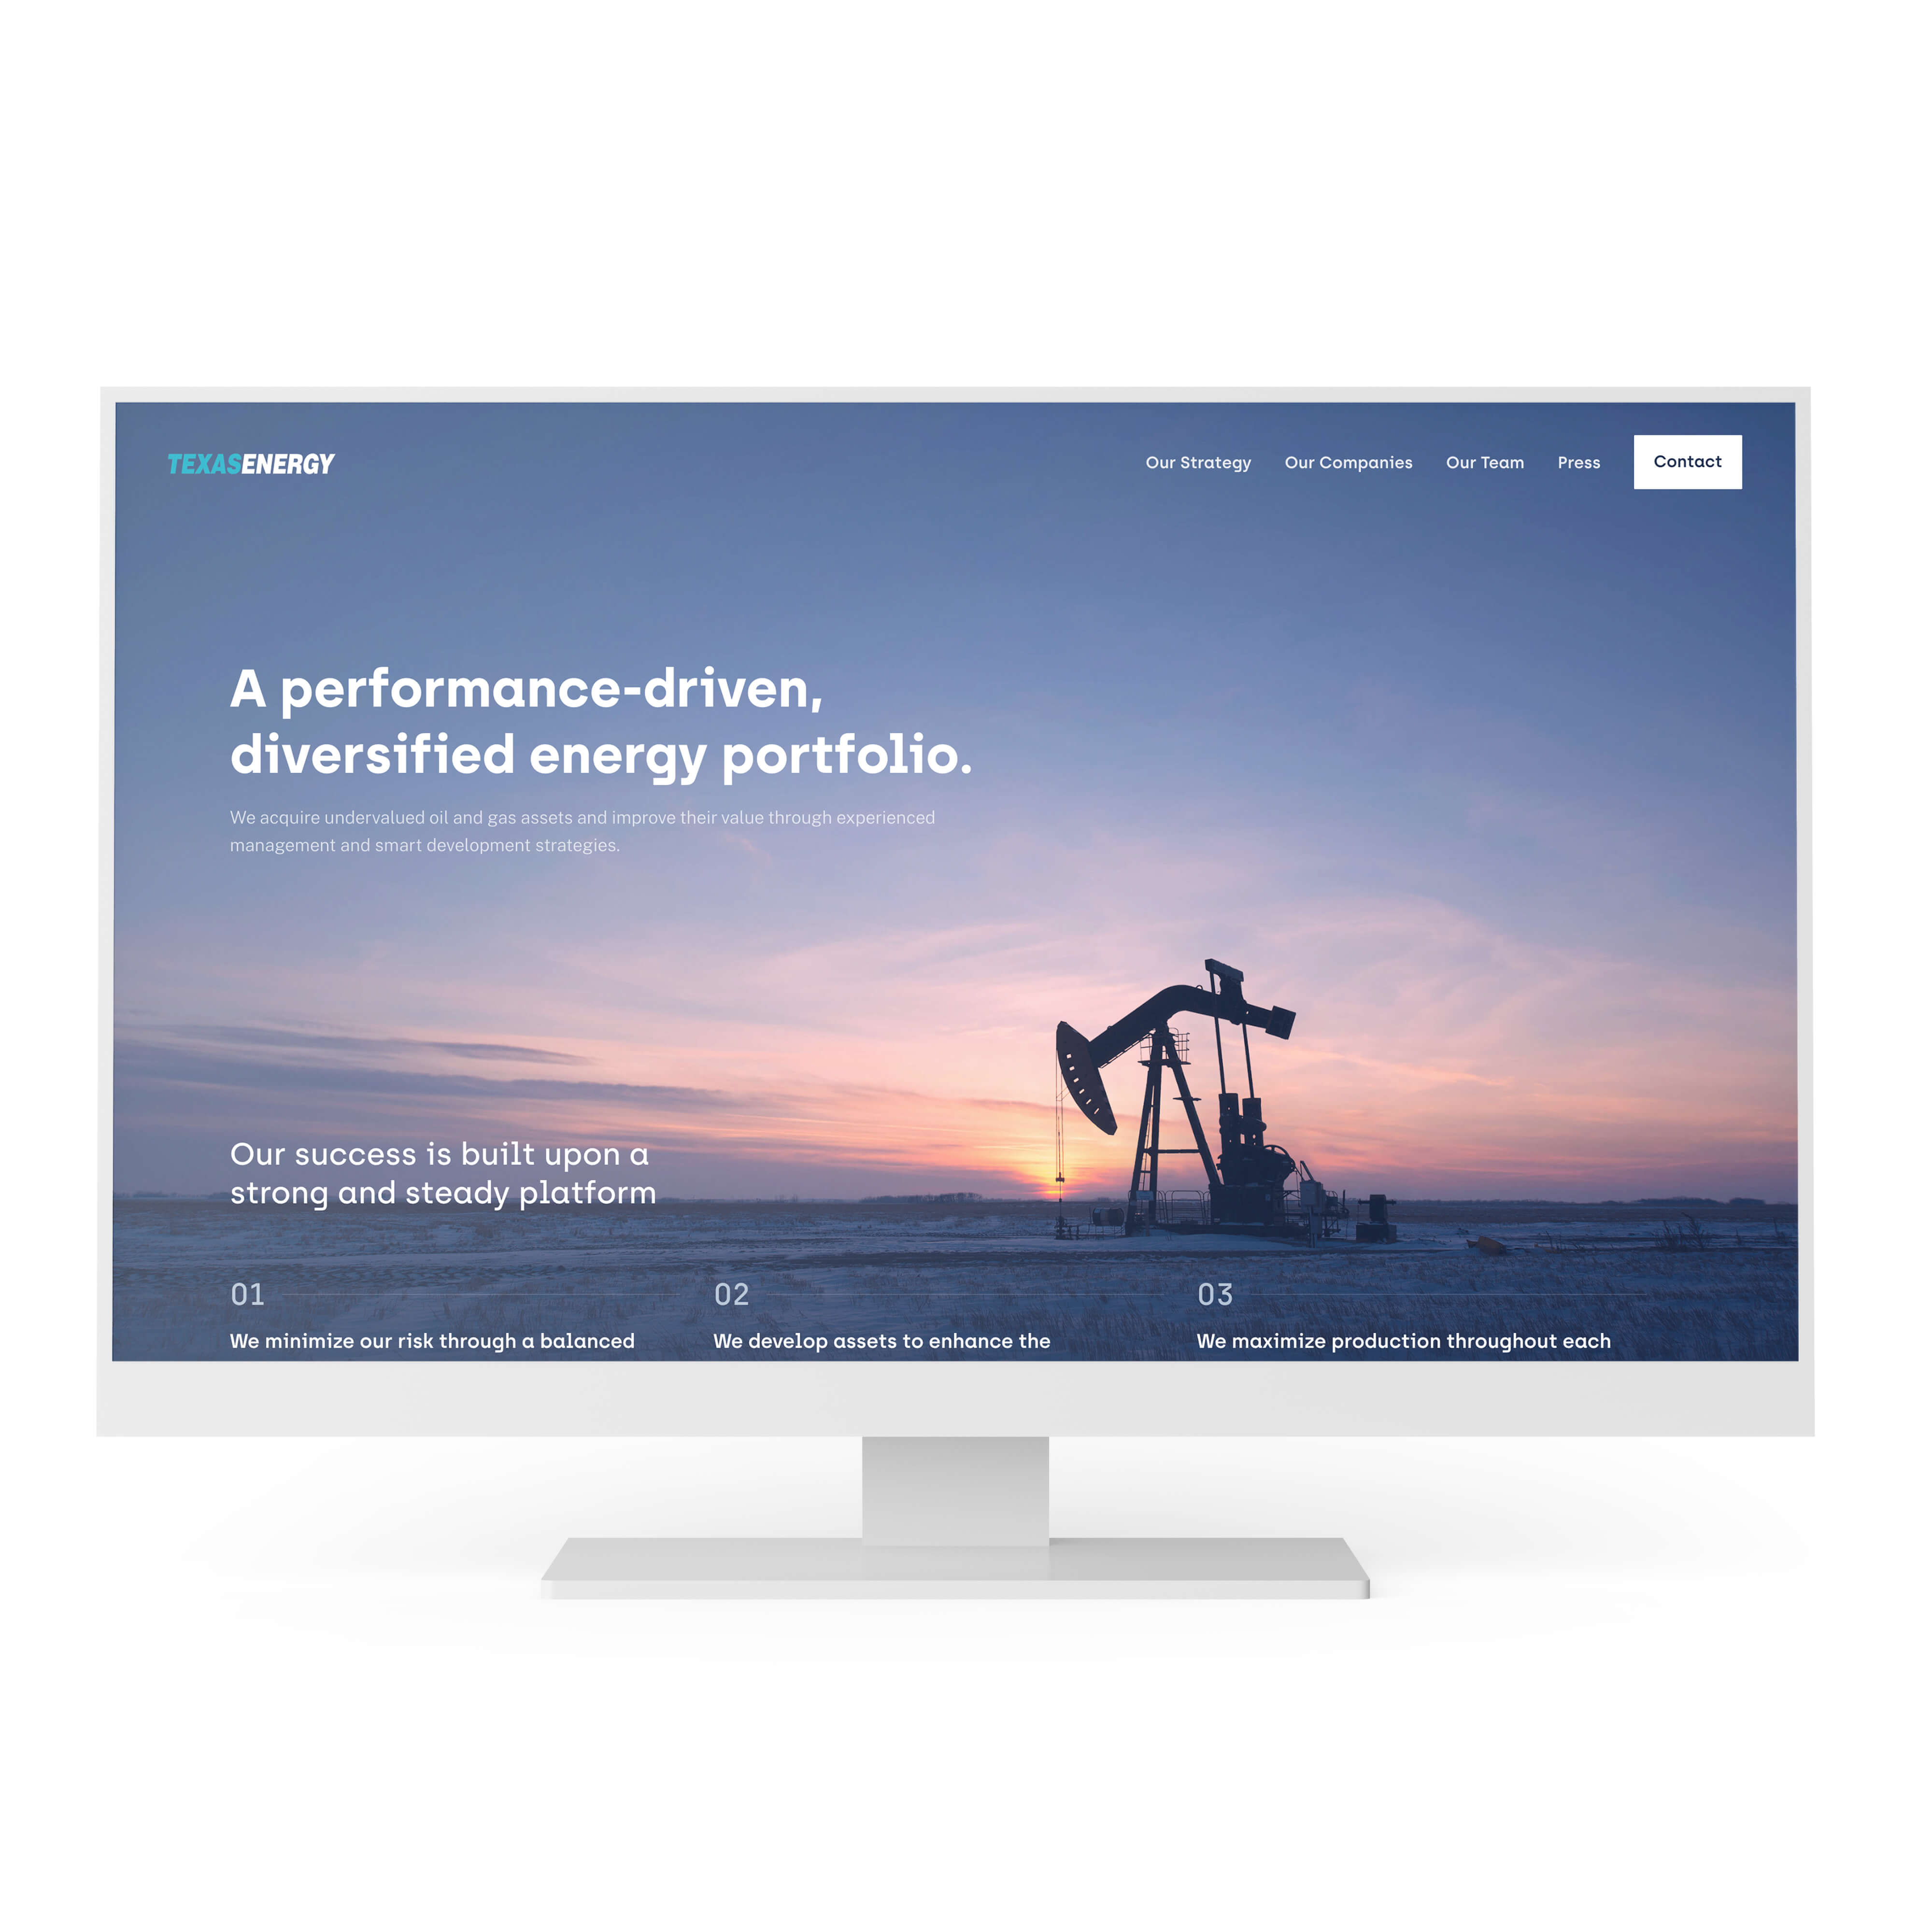 Mockup of the Texas Energy home page displayed on a large monitor